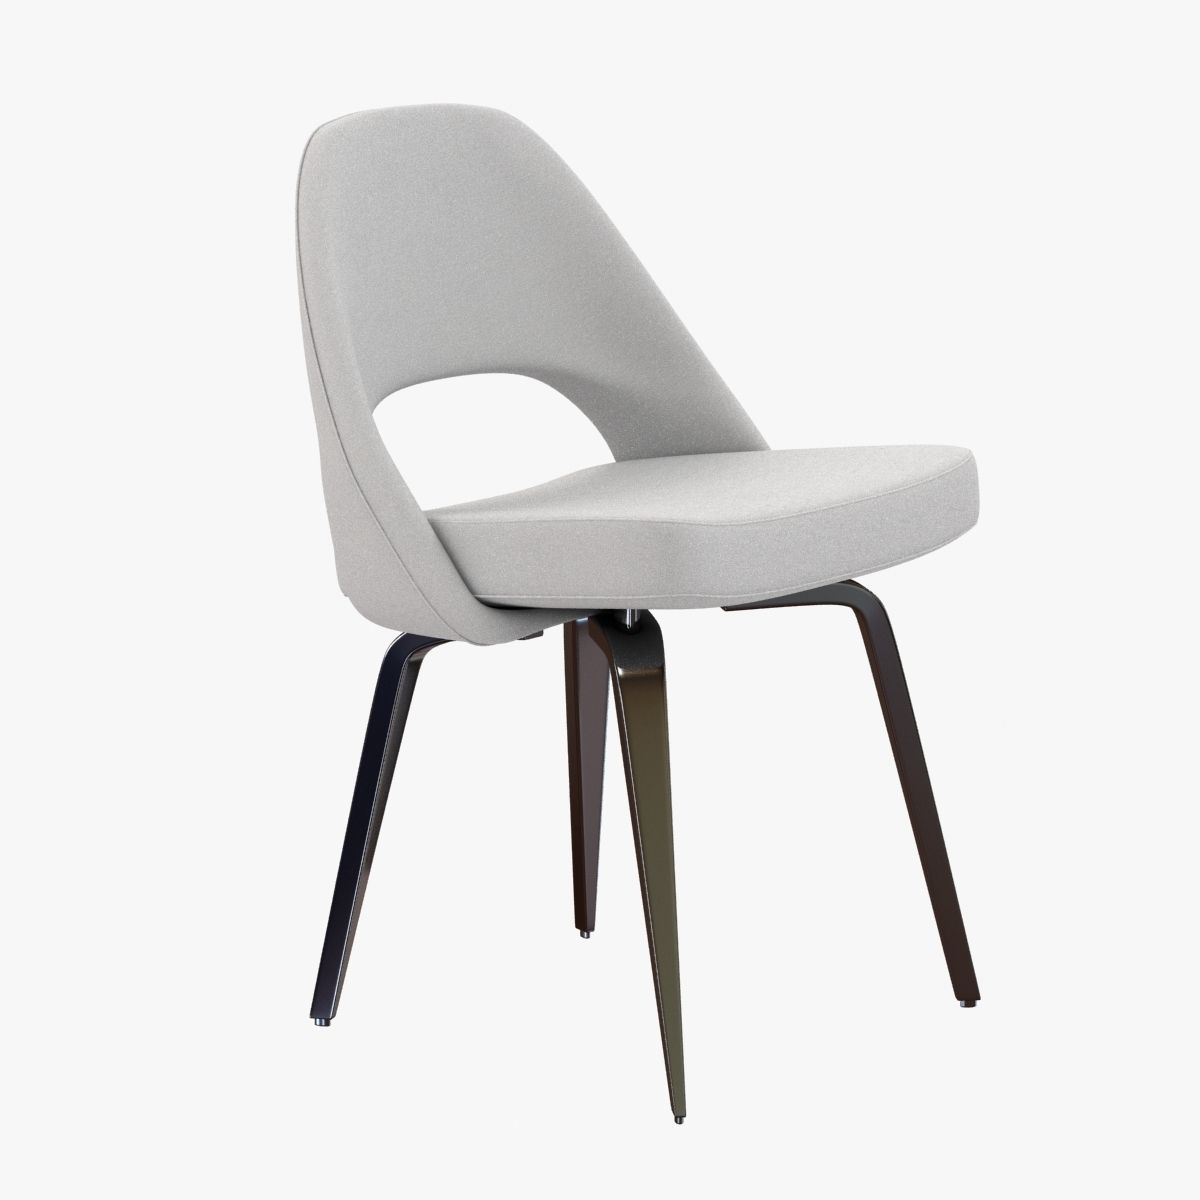 Saarinen Executive Side Chair 3d Model Max Obj 3ds Fbx Mtl 1 ...